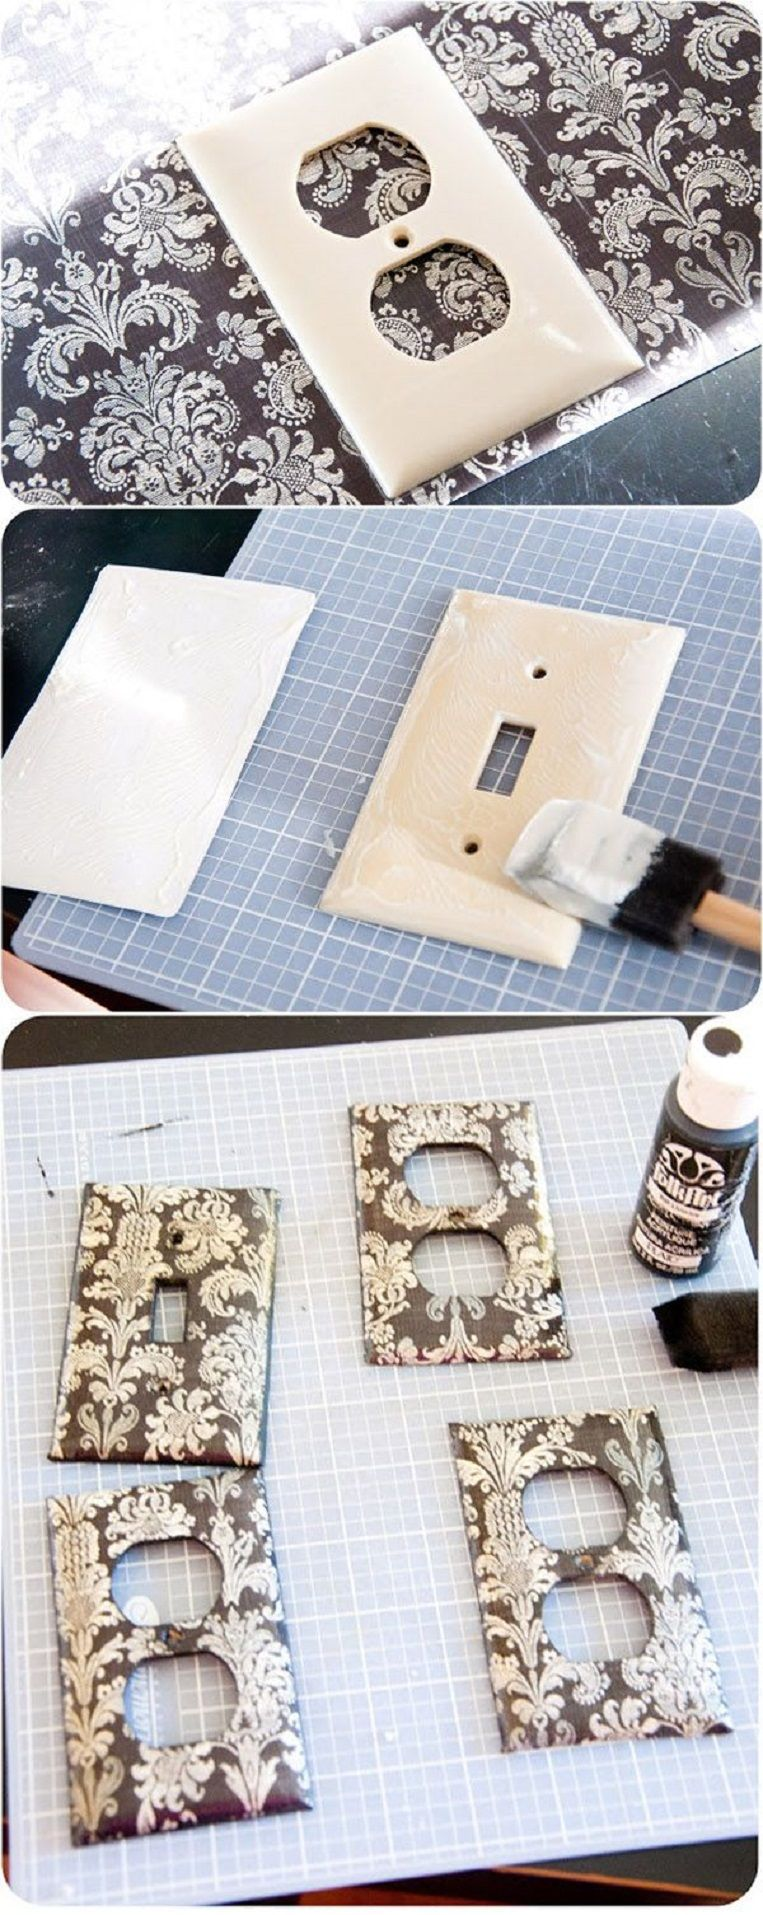 16 Diy Decor Crafts For Your Home Gleamitup Diy Decor Crafts Home Crafts Diy Lighting